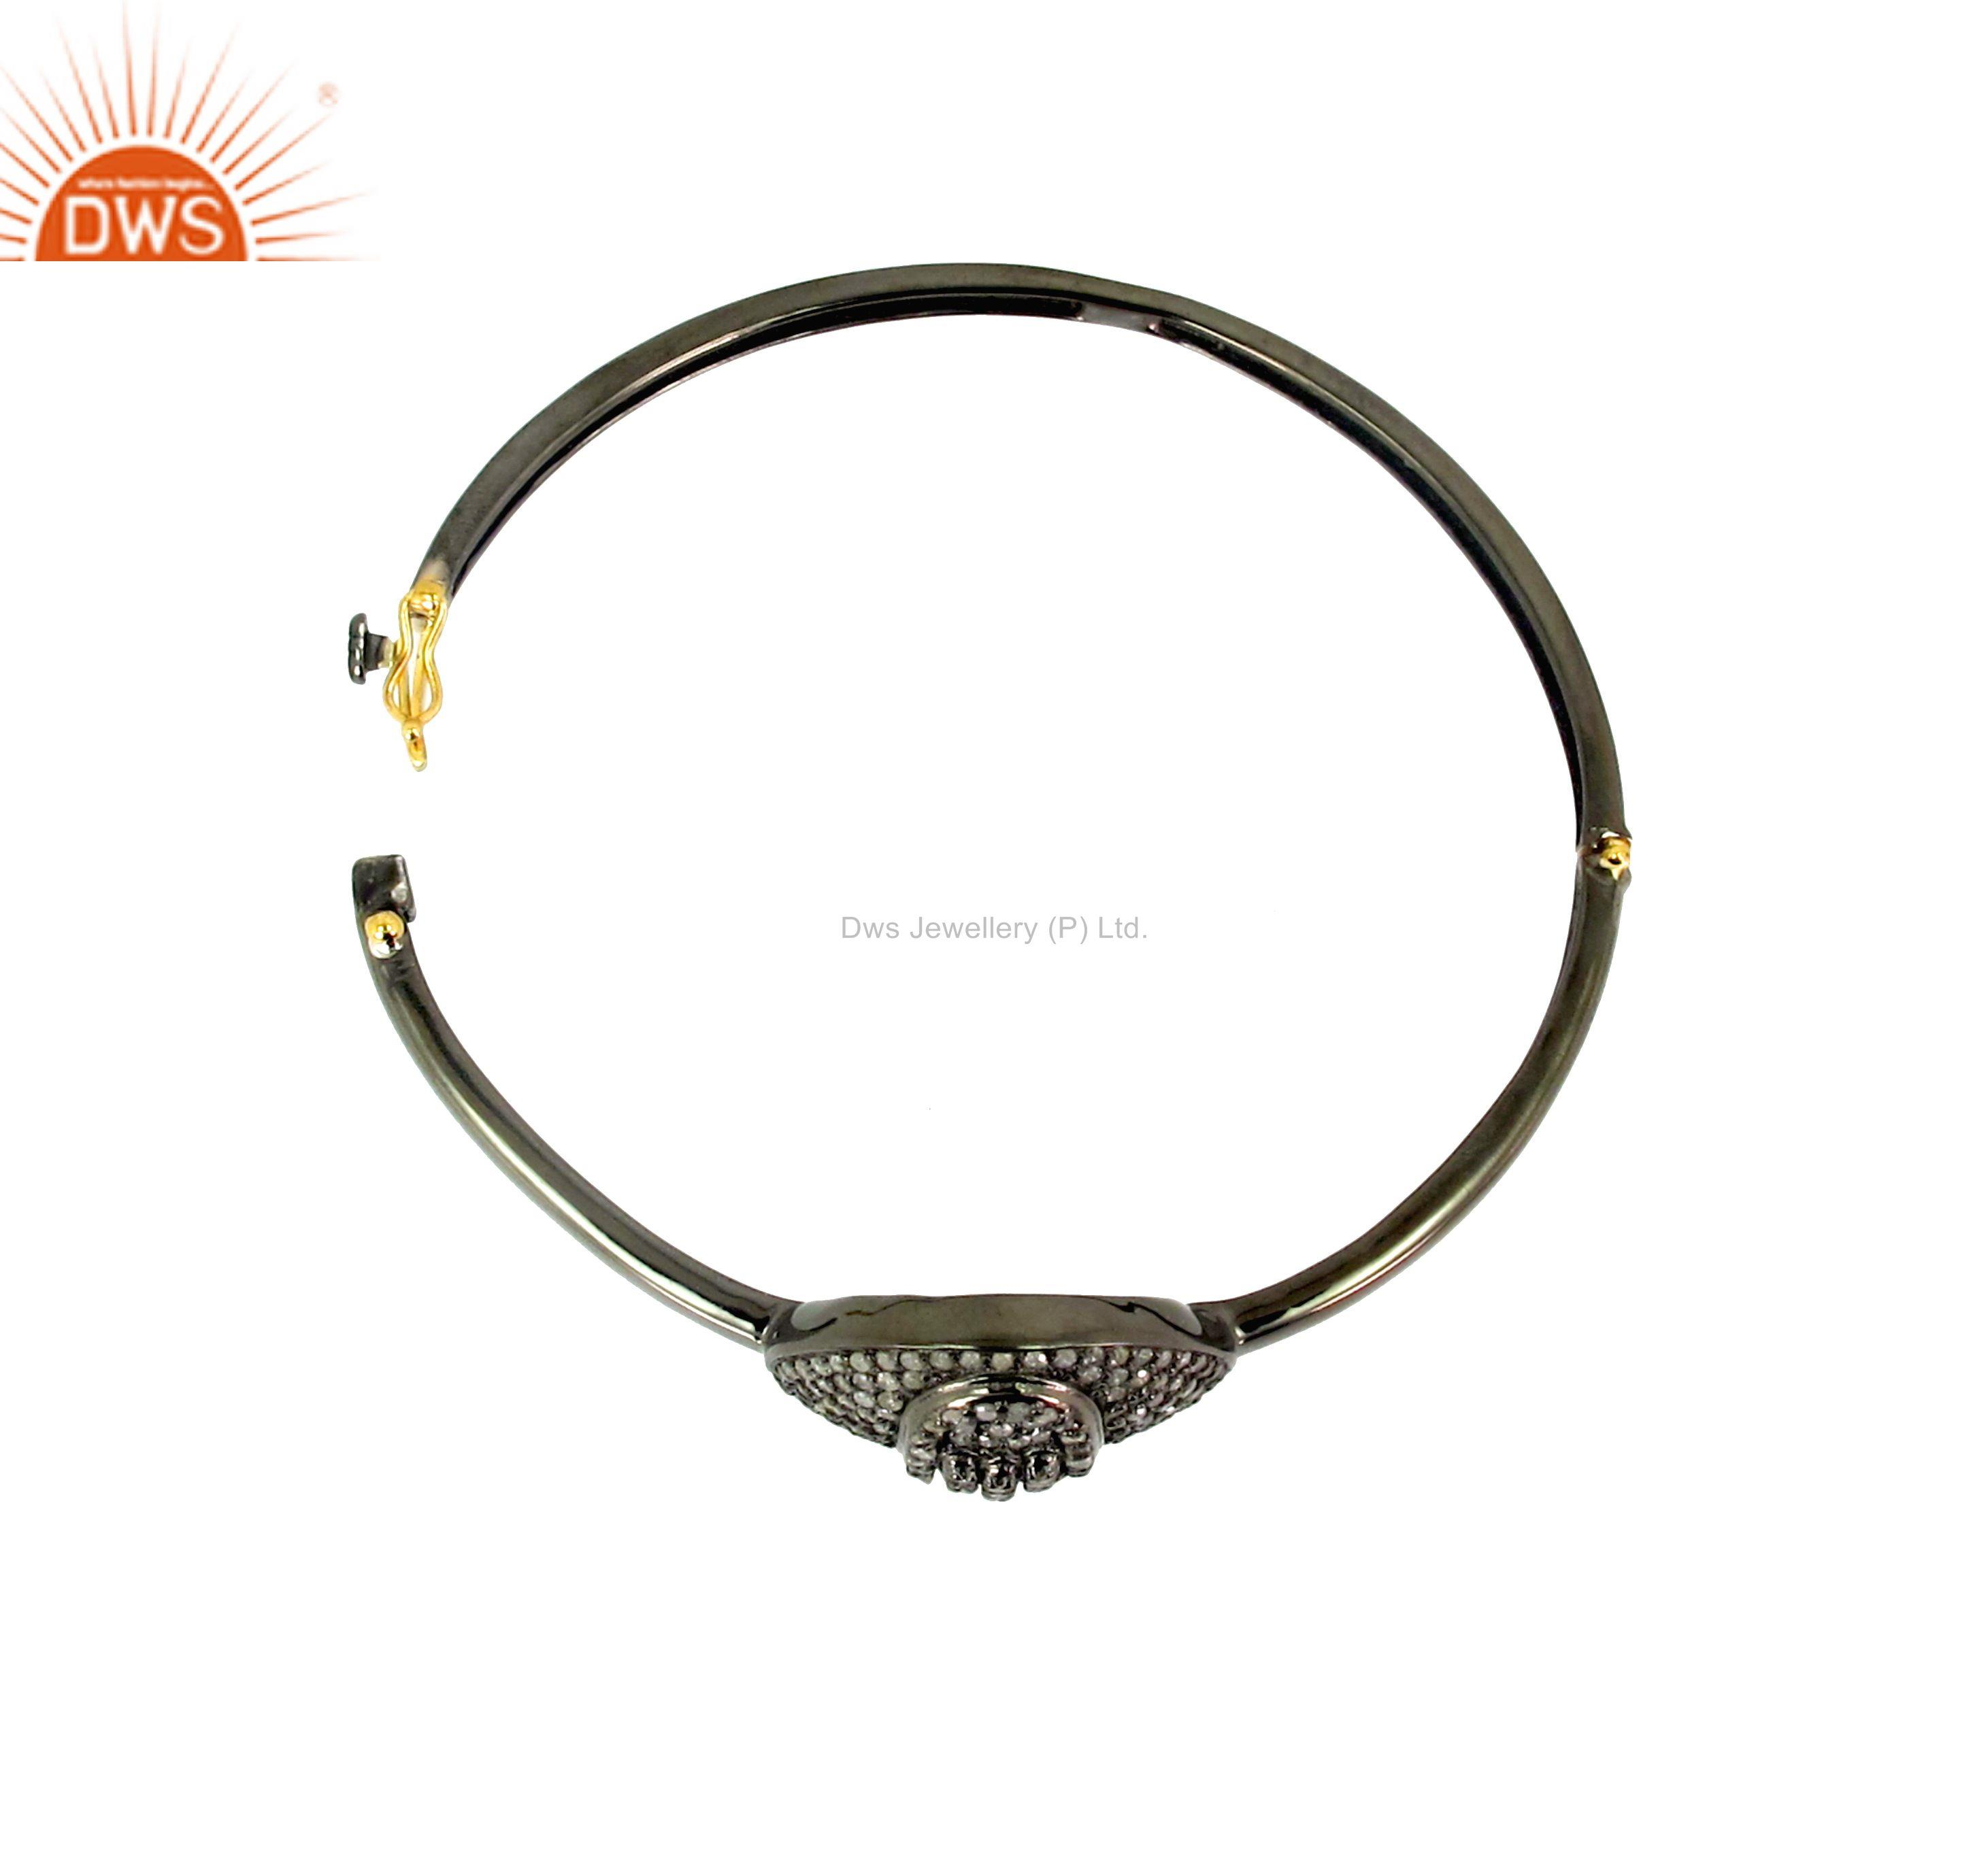 Supplier of Diamond studded hamsa hand bangle 14k gp 925 silver religious jewelry